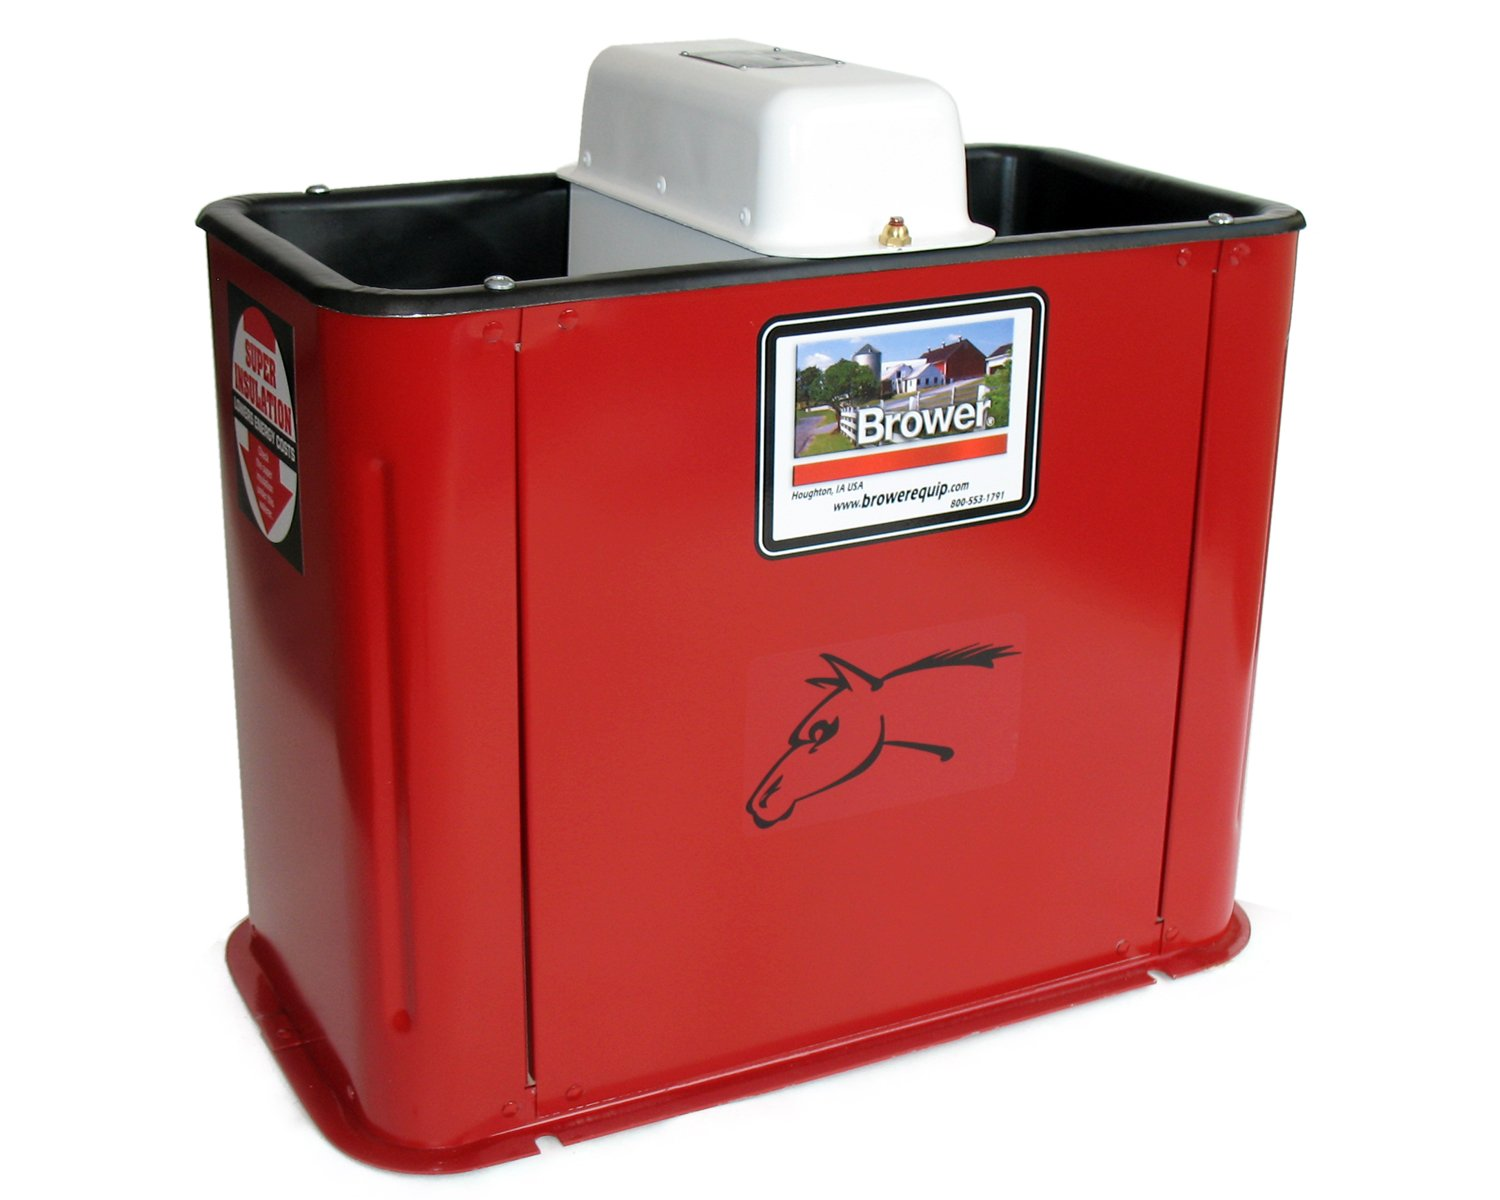 Brower MK32E Super Insulated Electric Heated Livestock Waterer by Brower